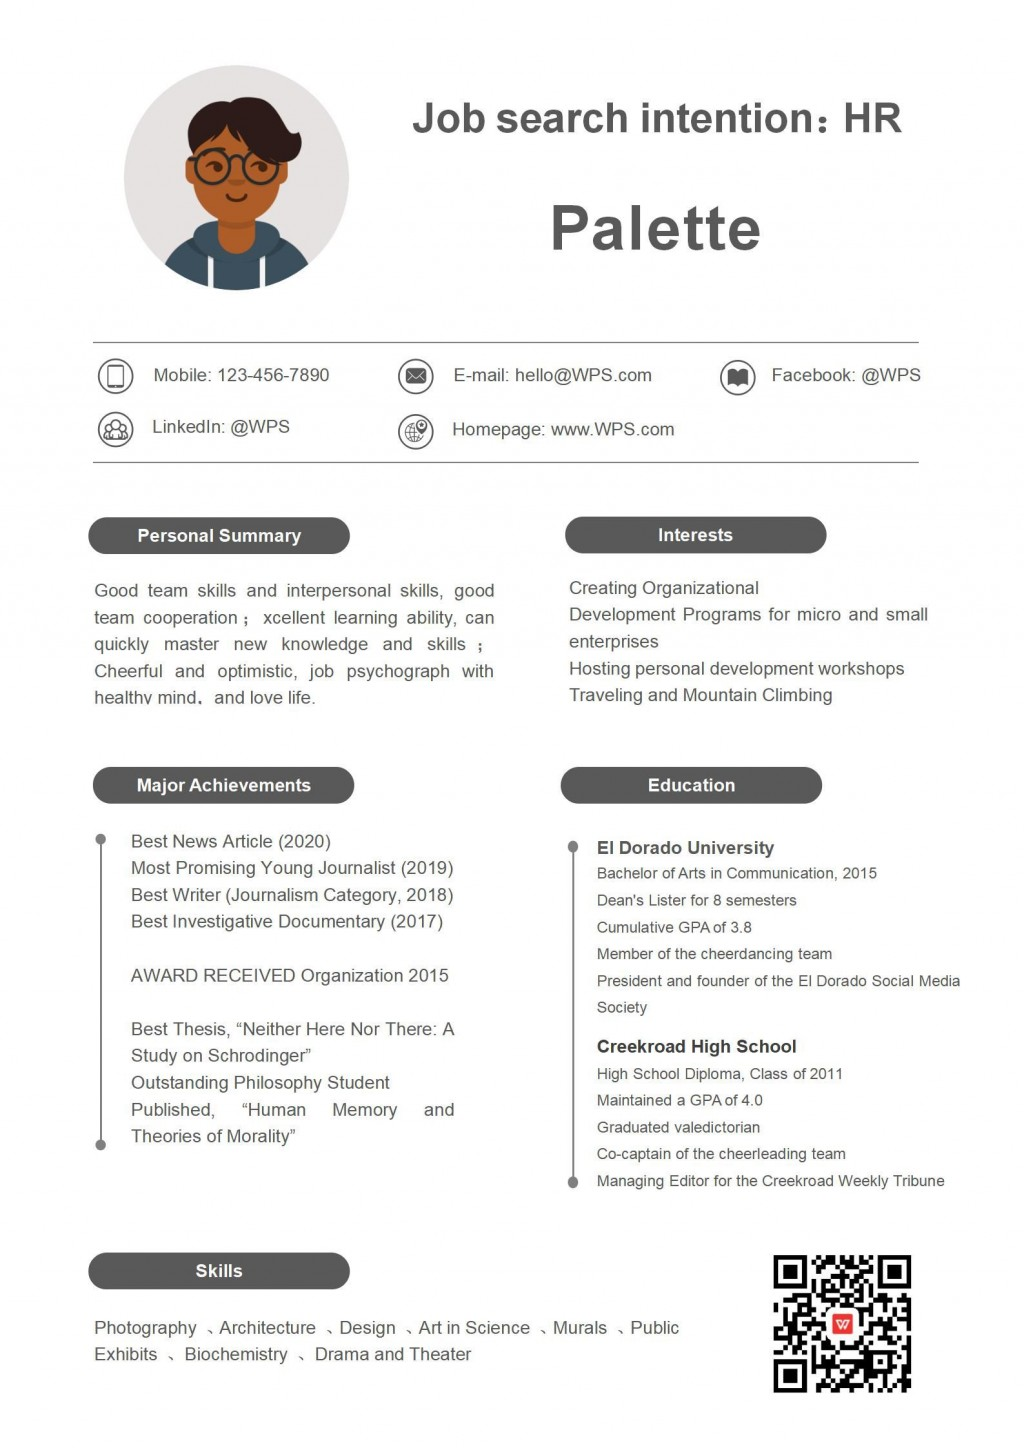 001 Magnificent Grad School Resume Template Free Photo Large